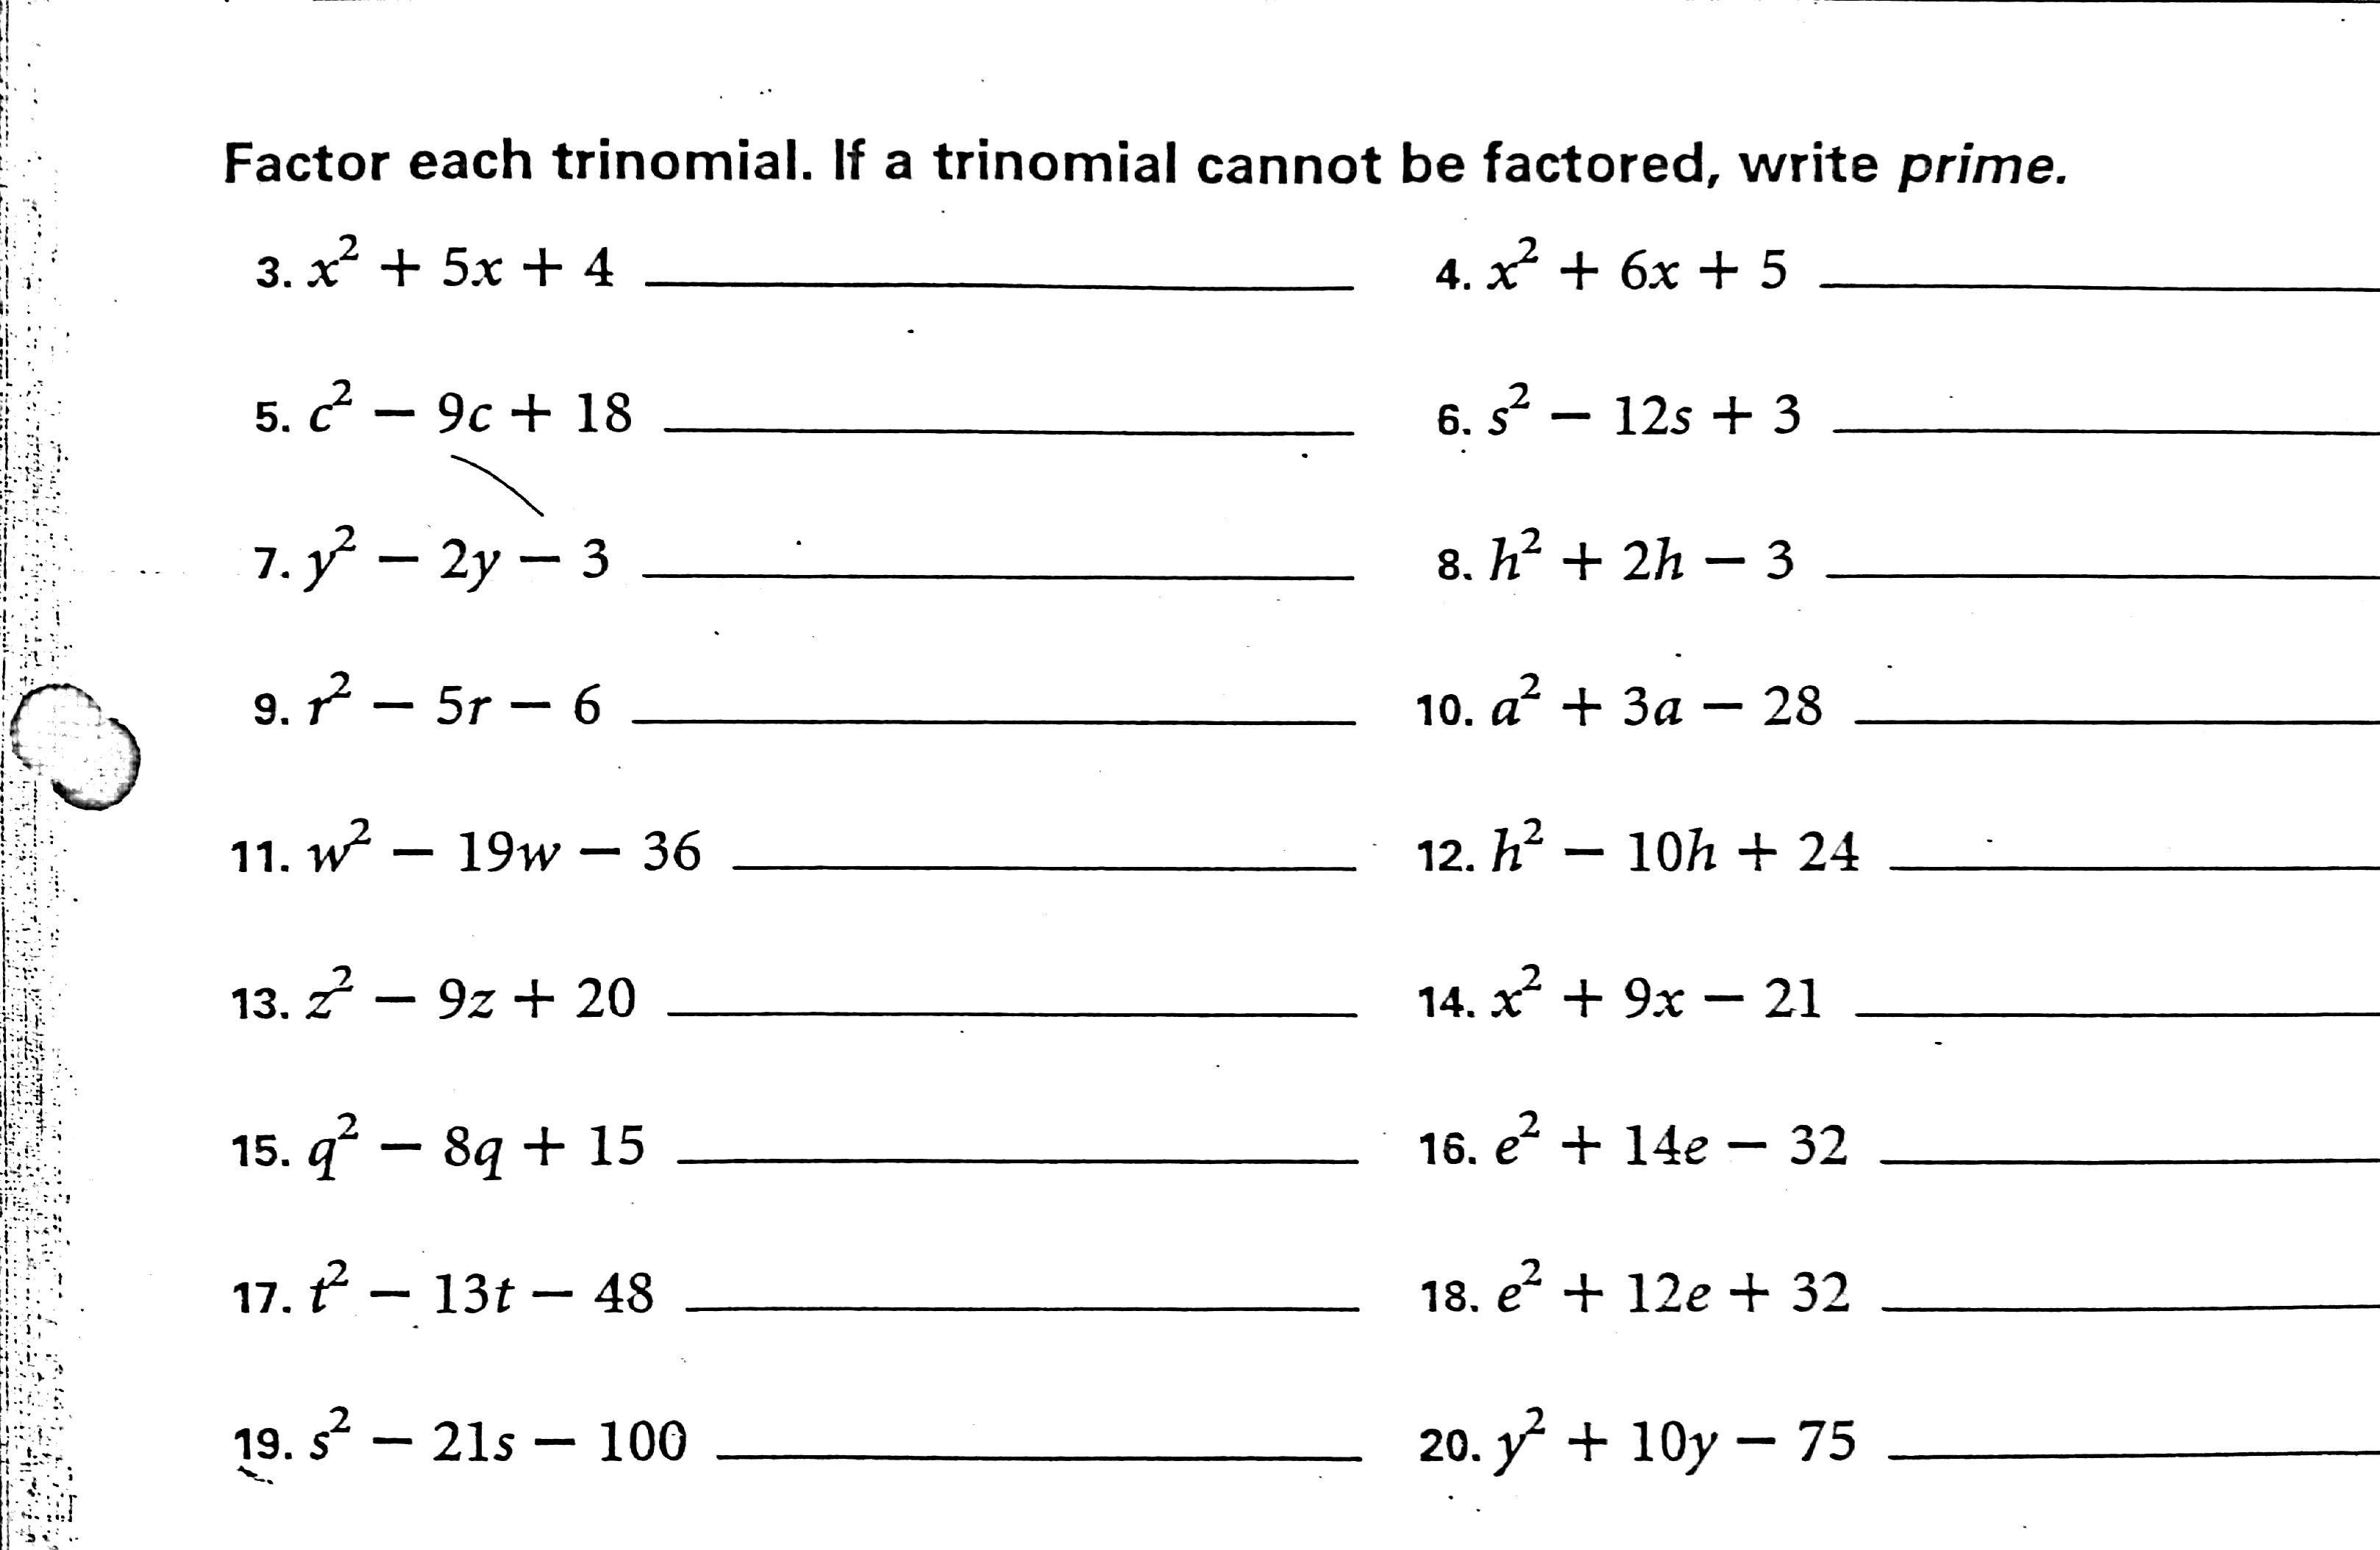 Proatmealus  Nice Factoring Worksheet  Delwfgcom With Engaging Factoring Polynomials Practice Worksheet With Answers Coterraneo With Alluring Worksheets For  Year Olds Also Domestic Violence Worksheets In Addition Wavelength Frequency Speed   Energy Worksheet And Food Labels Worksheet As Well As Algebraic Equations Worksheet Additionally Introduction To Geometry Worksheet From Delwfgcom With Proatmealus  Engaging Factoring Worksheet  Delwfgcom With Alluring Factoring Polynomials Practice Worksheet With Answers Coterraneo And Nice Worksheets For  Year Olds Also Domestic Violence Worksheets In Addition Wavelength Frequency Speed   Energy Worksheet From Delwfgcom